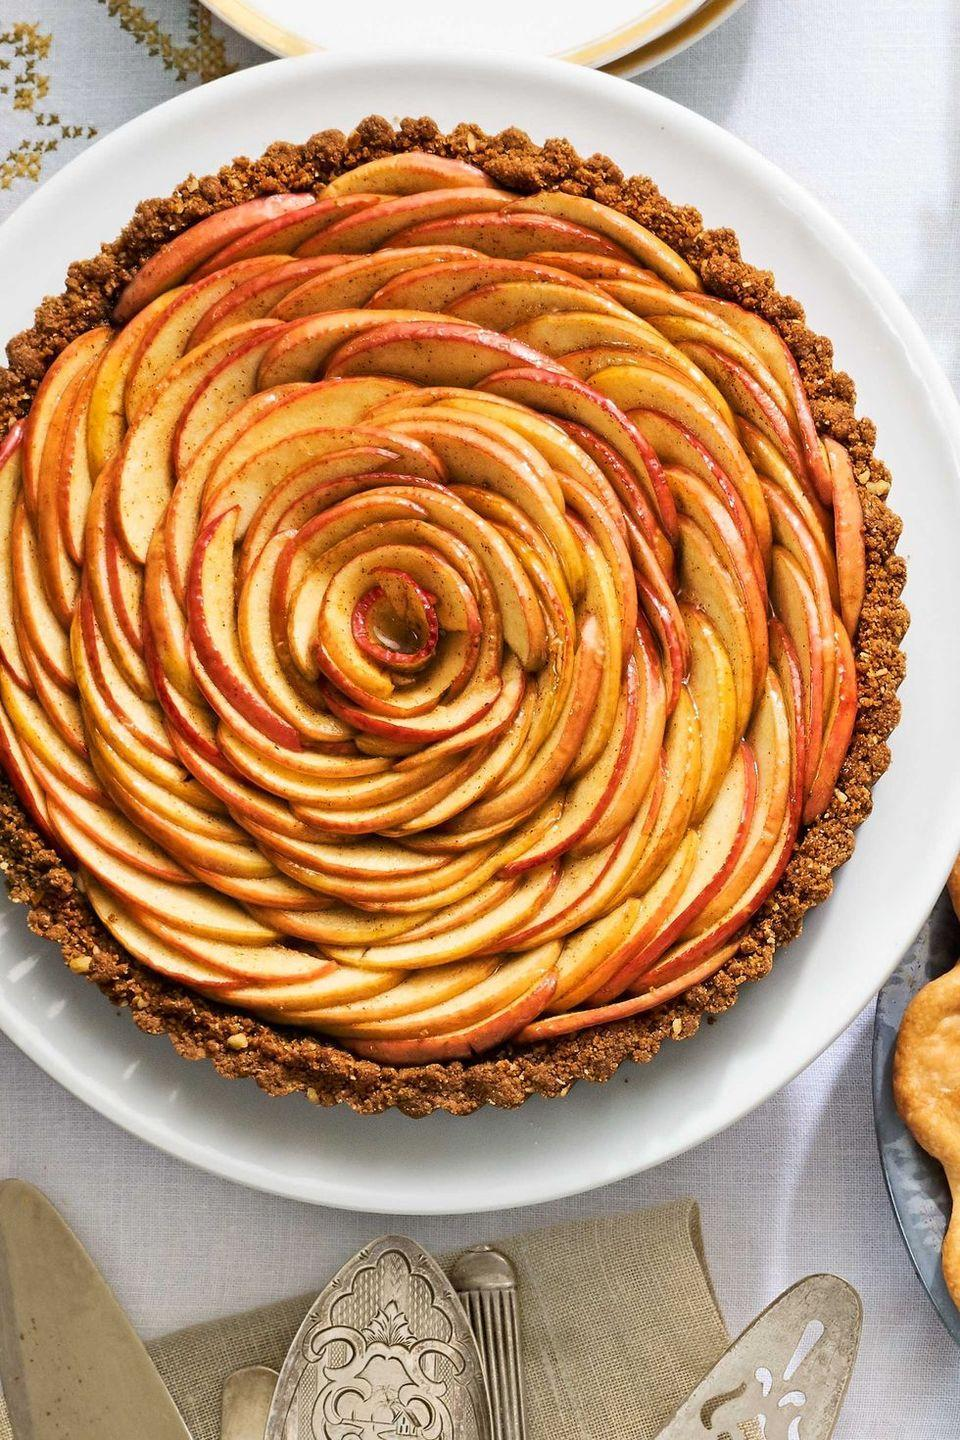 "<p>Go ahead and claim the title Thanksgiving MVP with this epic tart; you deserve it. </p><p><em><a href=""https://www.countryliving.com/food-drinks/recipes/a40043/apple-blossom-tart-recipe/"" rel=""nofollow noopener"" target=""_blank"" data-ylk=""slk:Get the recipe from Country Living »"" class=""link rapid-noclick-resp"">Get the recipe from Country Living »</a></em></p><p><strong>RELATED: </strong><a href=""https://www.goodhousekeeping.com/food-recipes/dessert/g768/apple-dessert-recipes/"" rel=""nofollow noopener"" target=""_blank"" data-ylk=""slk:40 Apple Desserts That Are Delicious to the Core"" class=""link rapid-noclick-resp"">40 Apple Desserts That Are Delicious to the Core</a></p>"